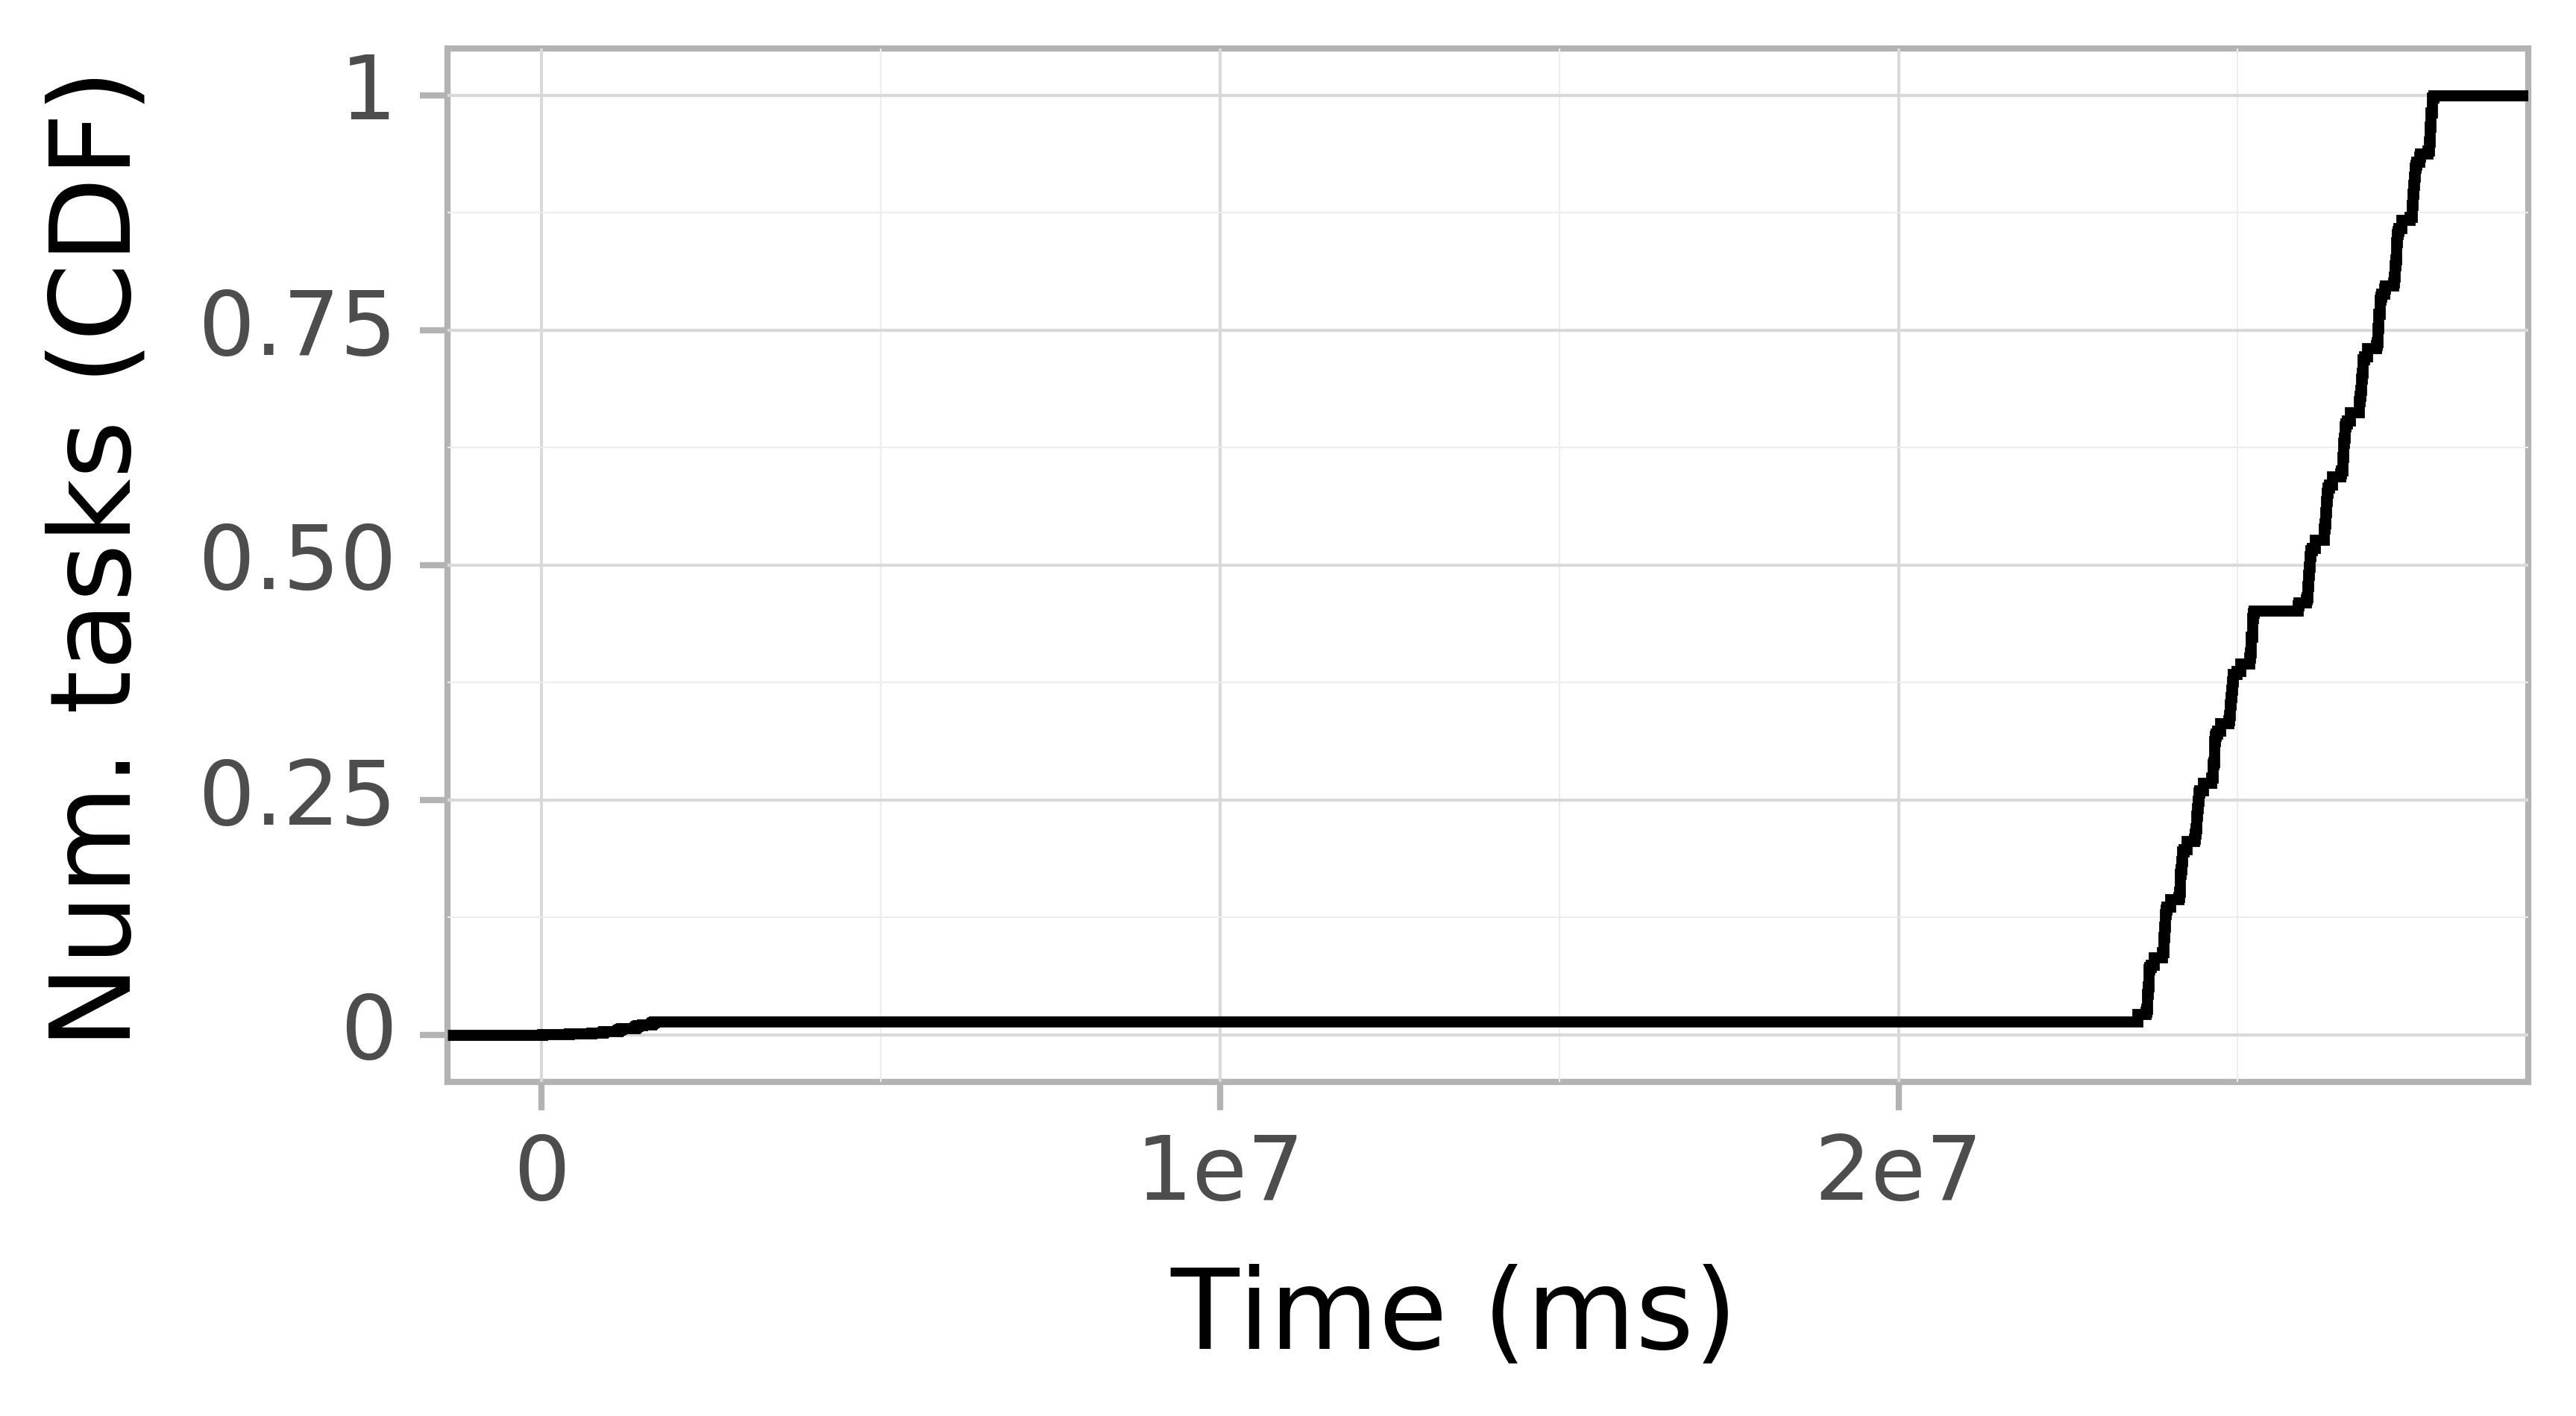 Task arrival CDF graph for the askalon-new_ee36 trace.